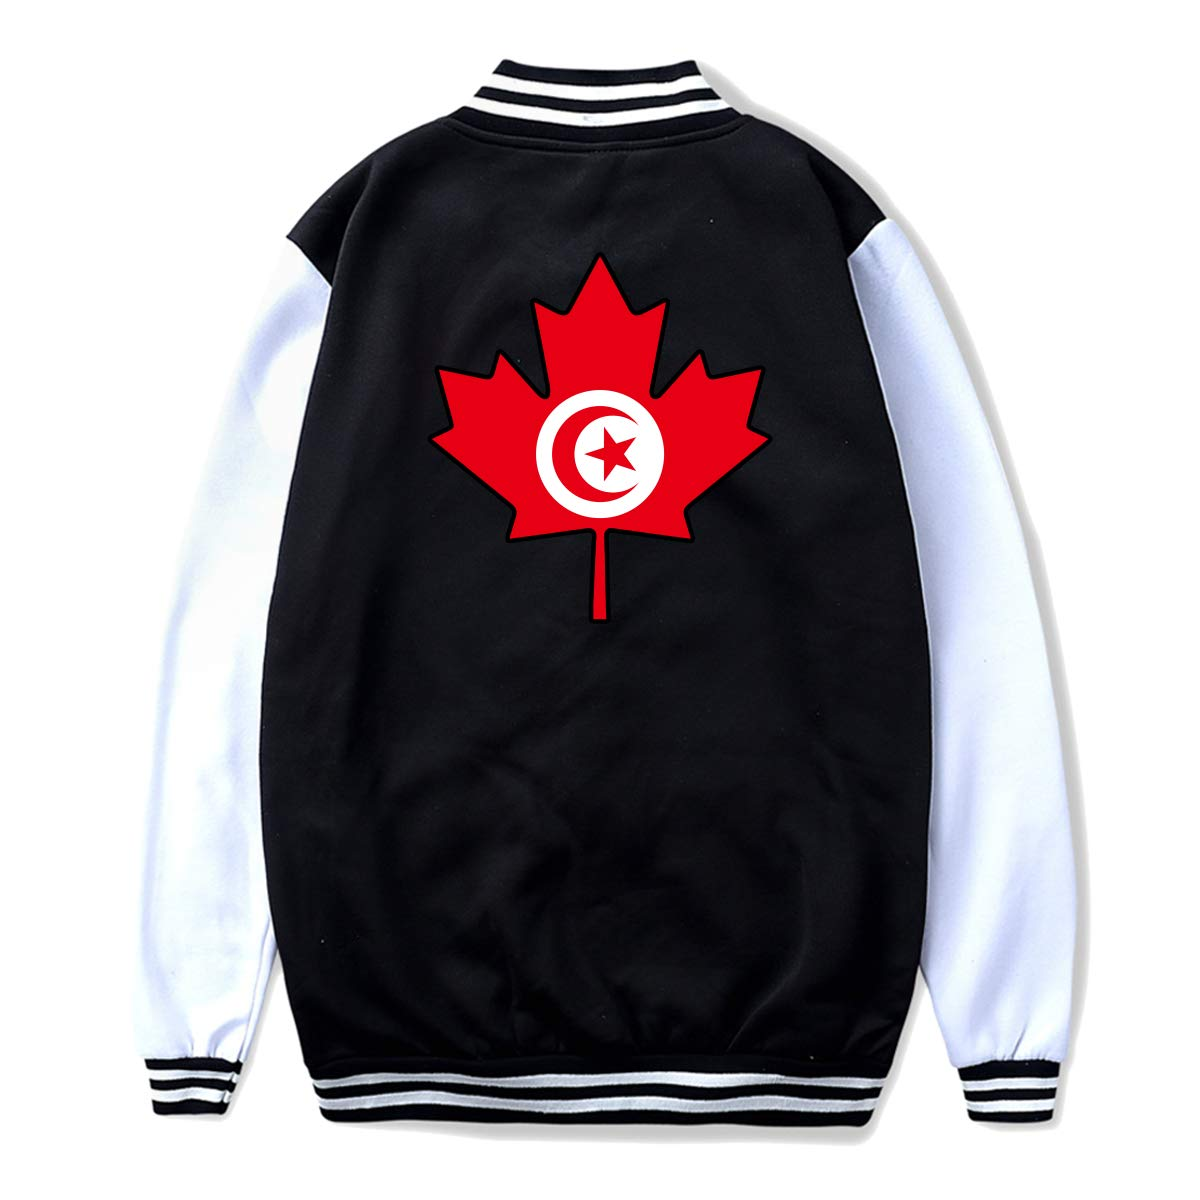 Back Print Unisex Youth Baseball Uniform Jacket Tunisia Flag Canada Maple Leaf Hoodie Sweatshirt Sweater Tee